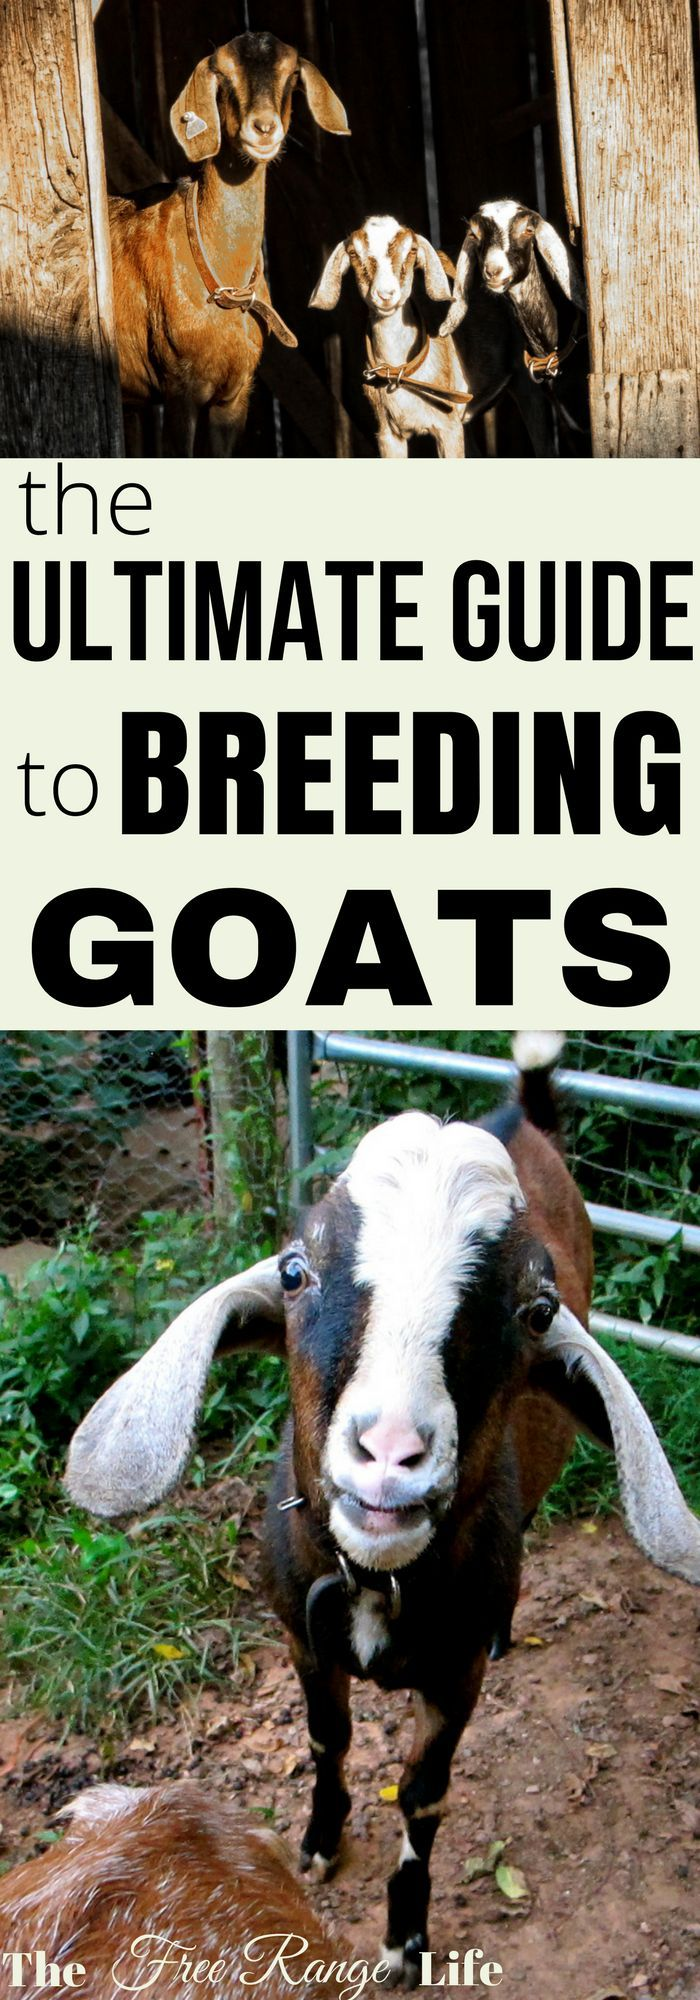 Are you getting ready to breed your goats for the first time? Find out everything you need to know about breeding goats.